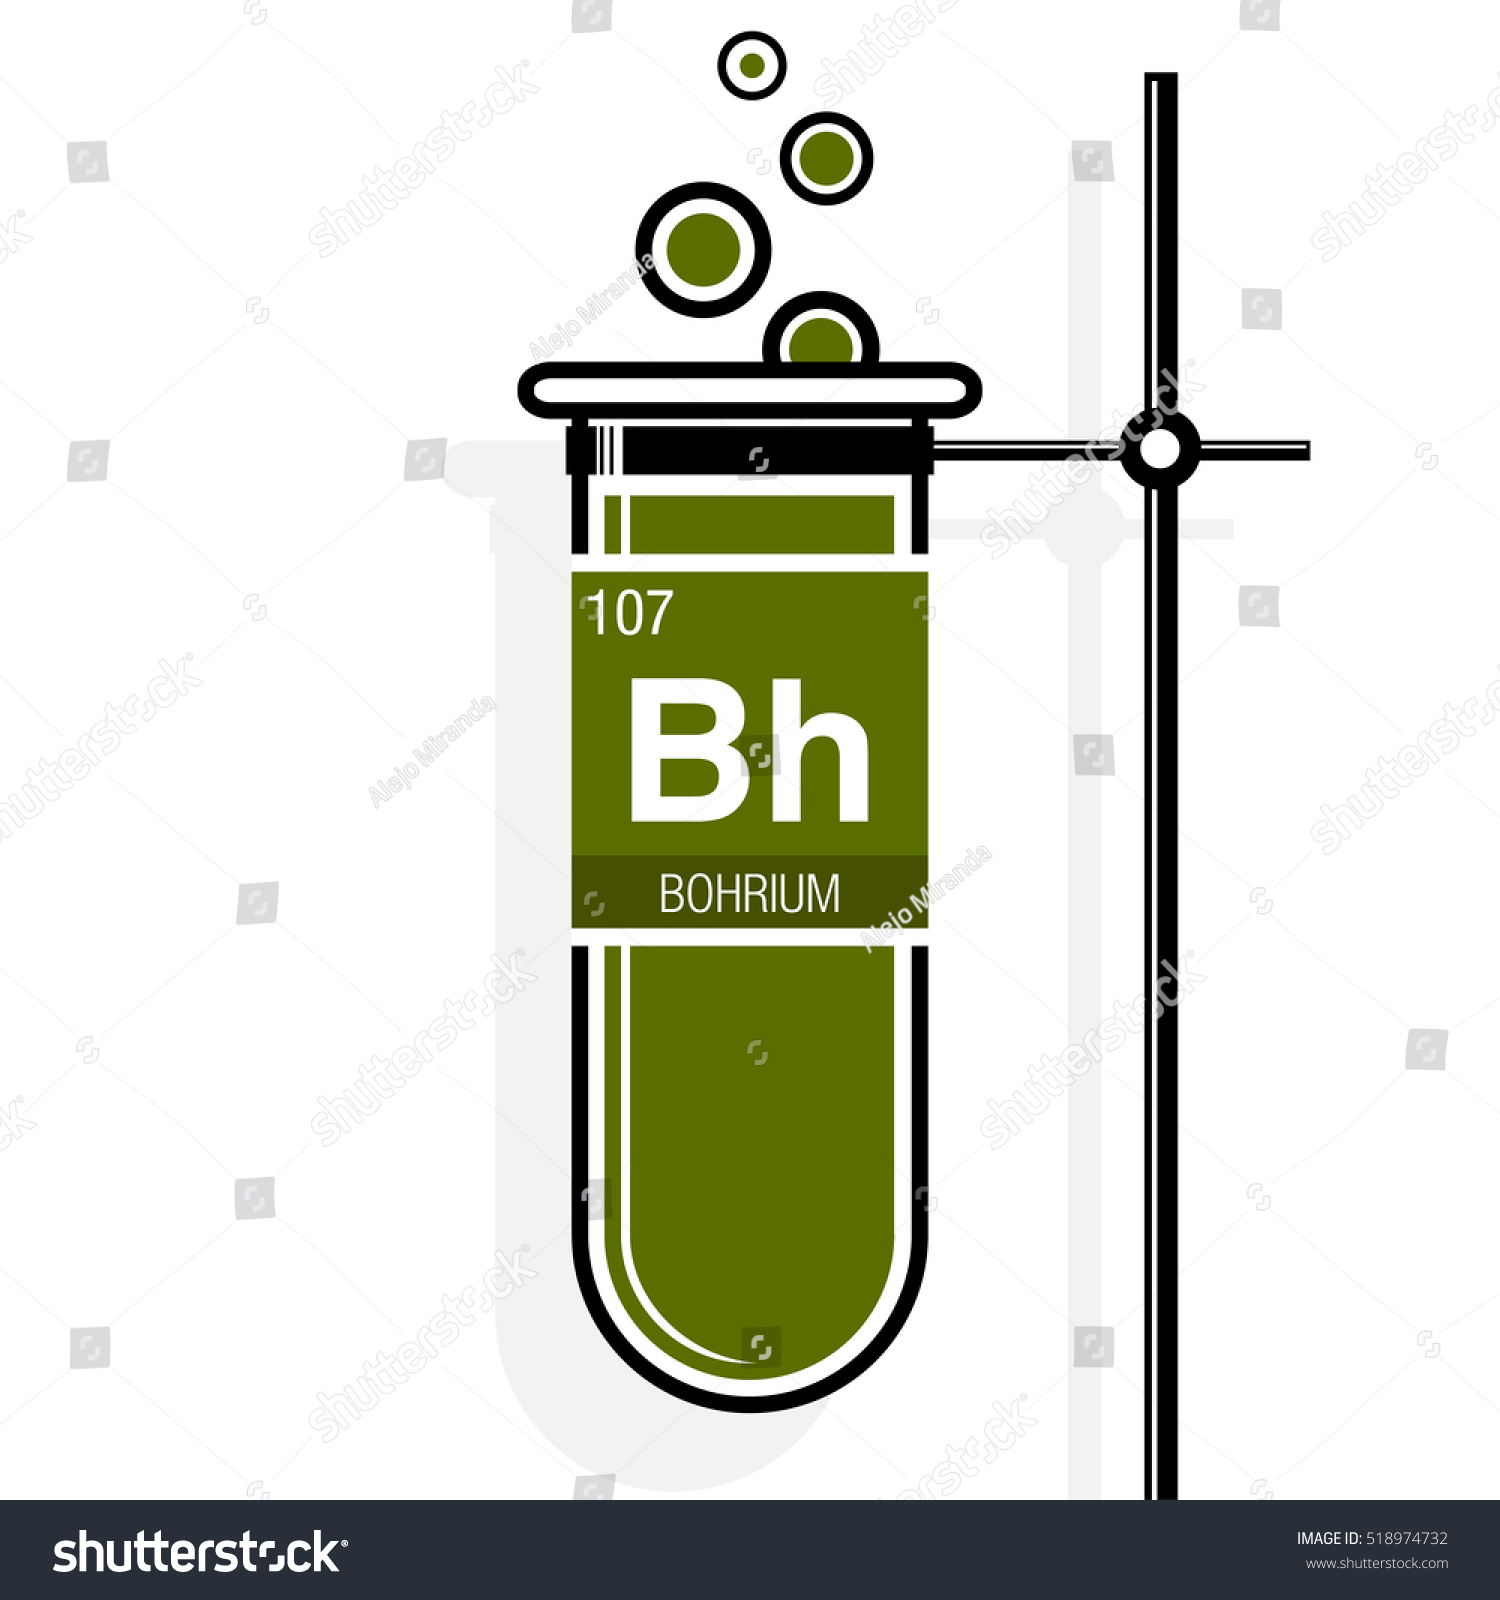 Bohrium symbol on label green test stock vector 518974732 bohrium symbol on label green test stock vector 518974732 shutterstock urtaz Choice Image